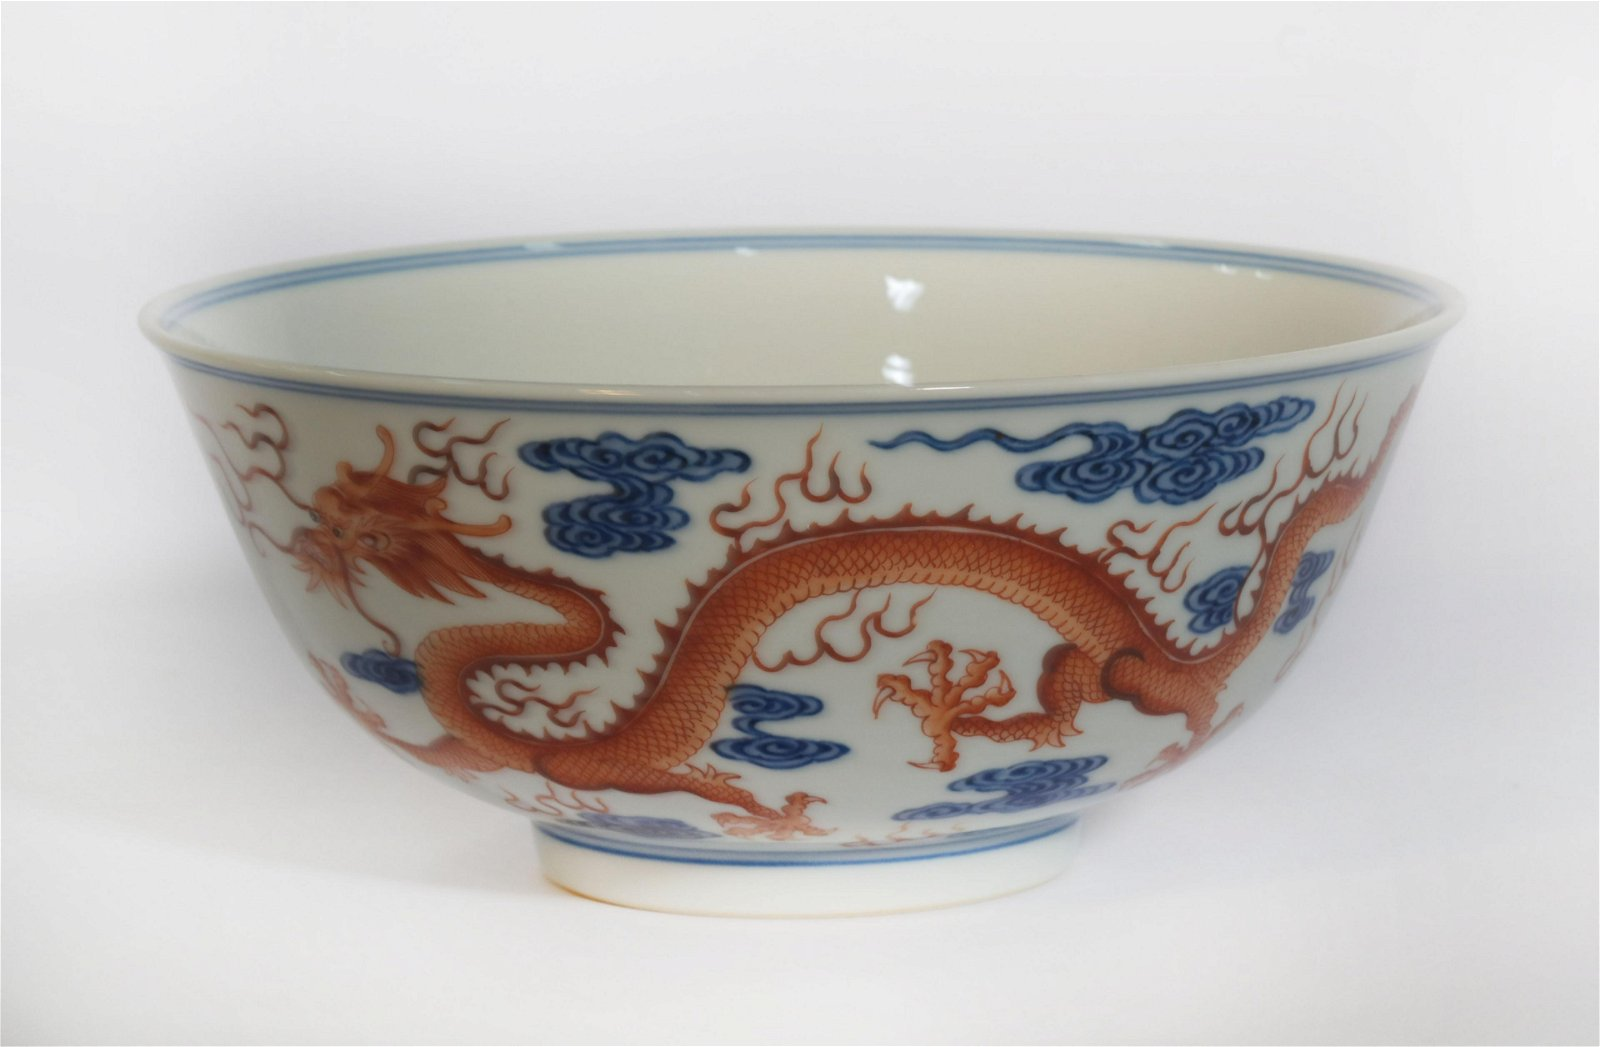 An Underglaze Blue and Iron Red Dragon Bowls Qianlong